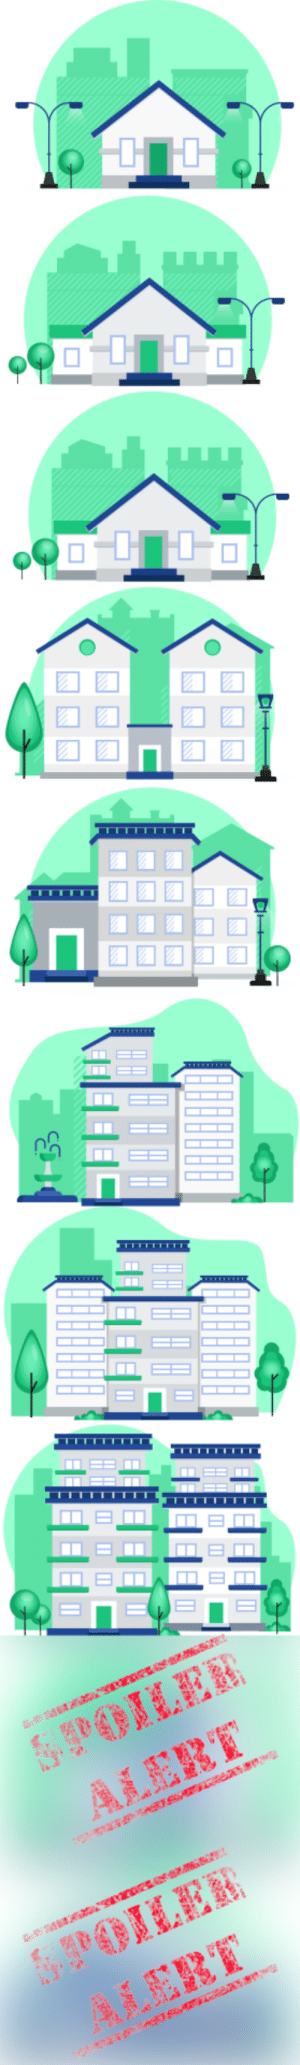 New teaser for firm progression! Upgrade the firm to allow more users, and move into a bigger house or office building! via /r/MemeEconomy https://ift.tt/2NHUC4c: New teaser for firm progression! Upgrade the firm to allow more users, and move into a bigger house or office building! via /r/MemeEconomy https://ift.tt/2NHUC4c